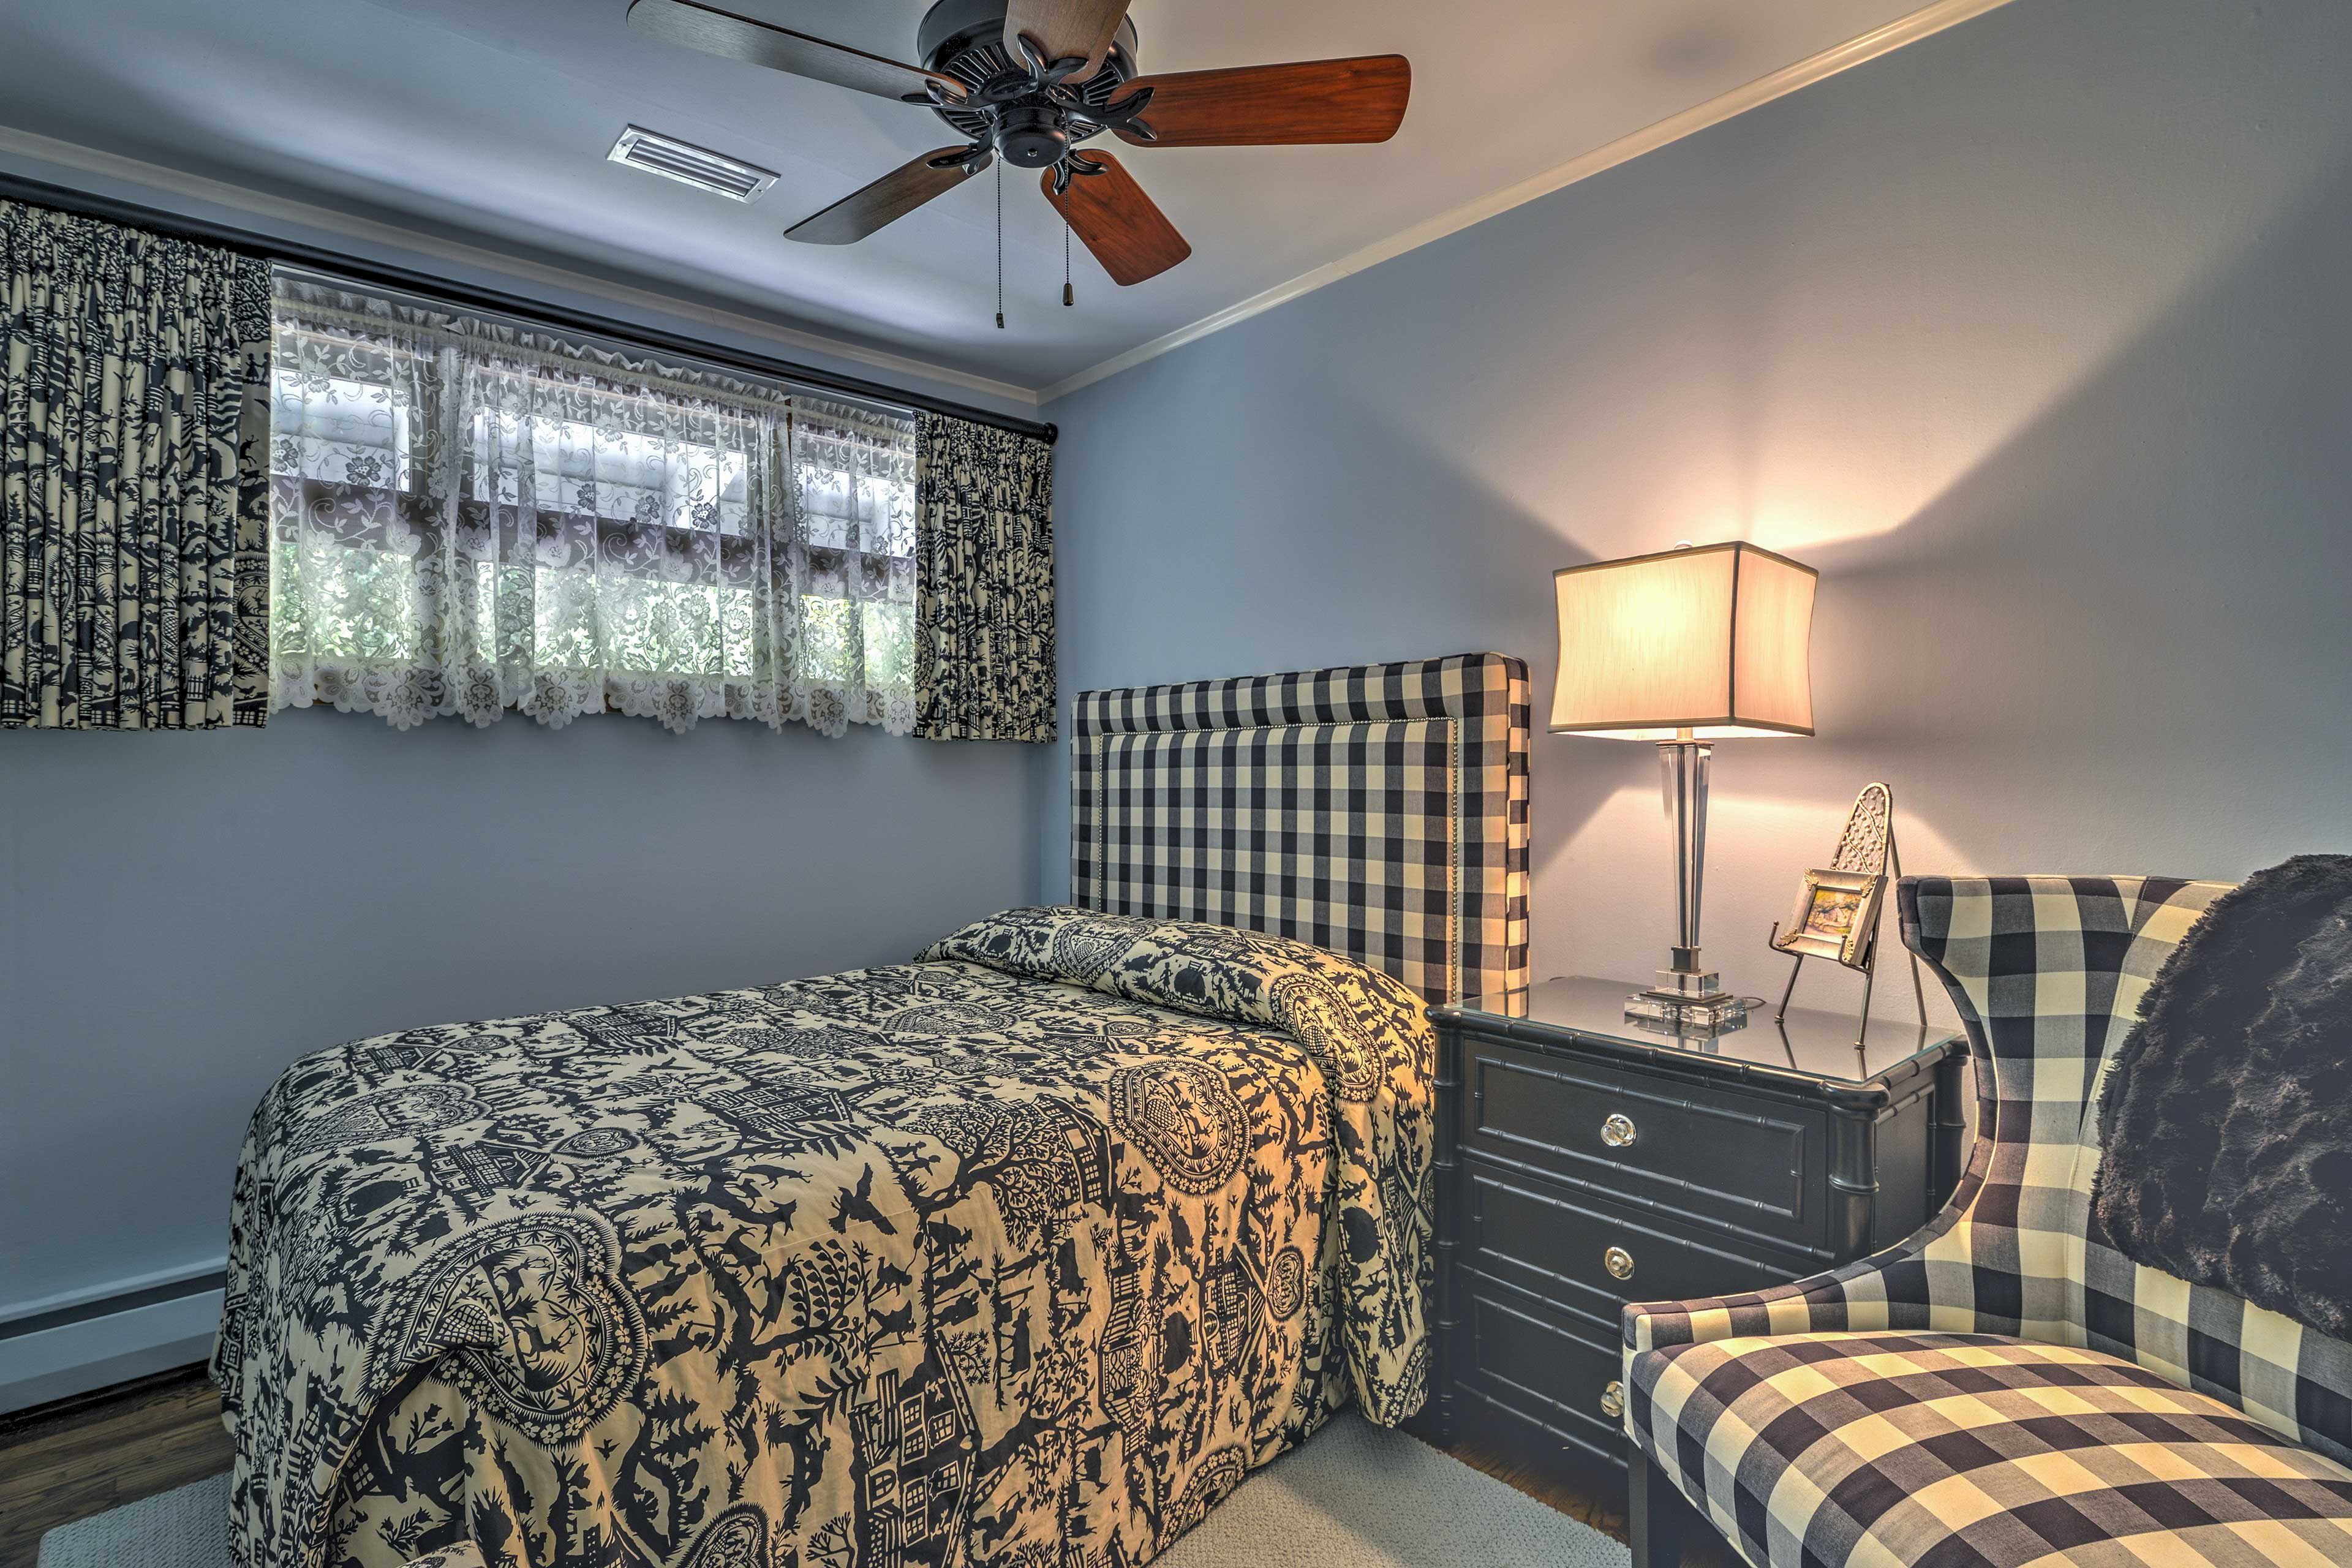 The second bedroom provides a full bed.